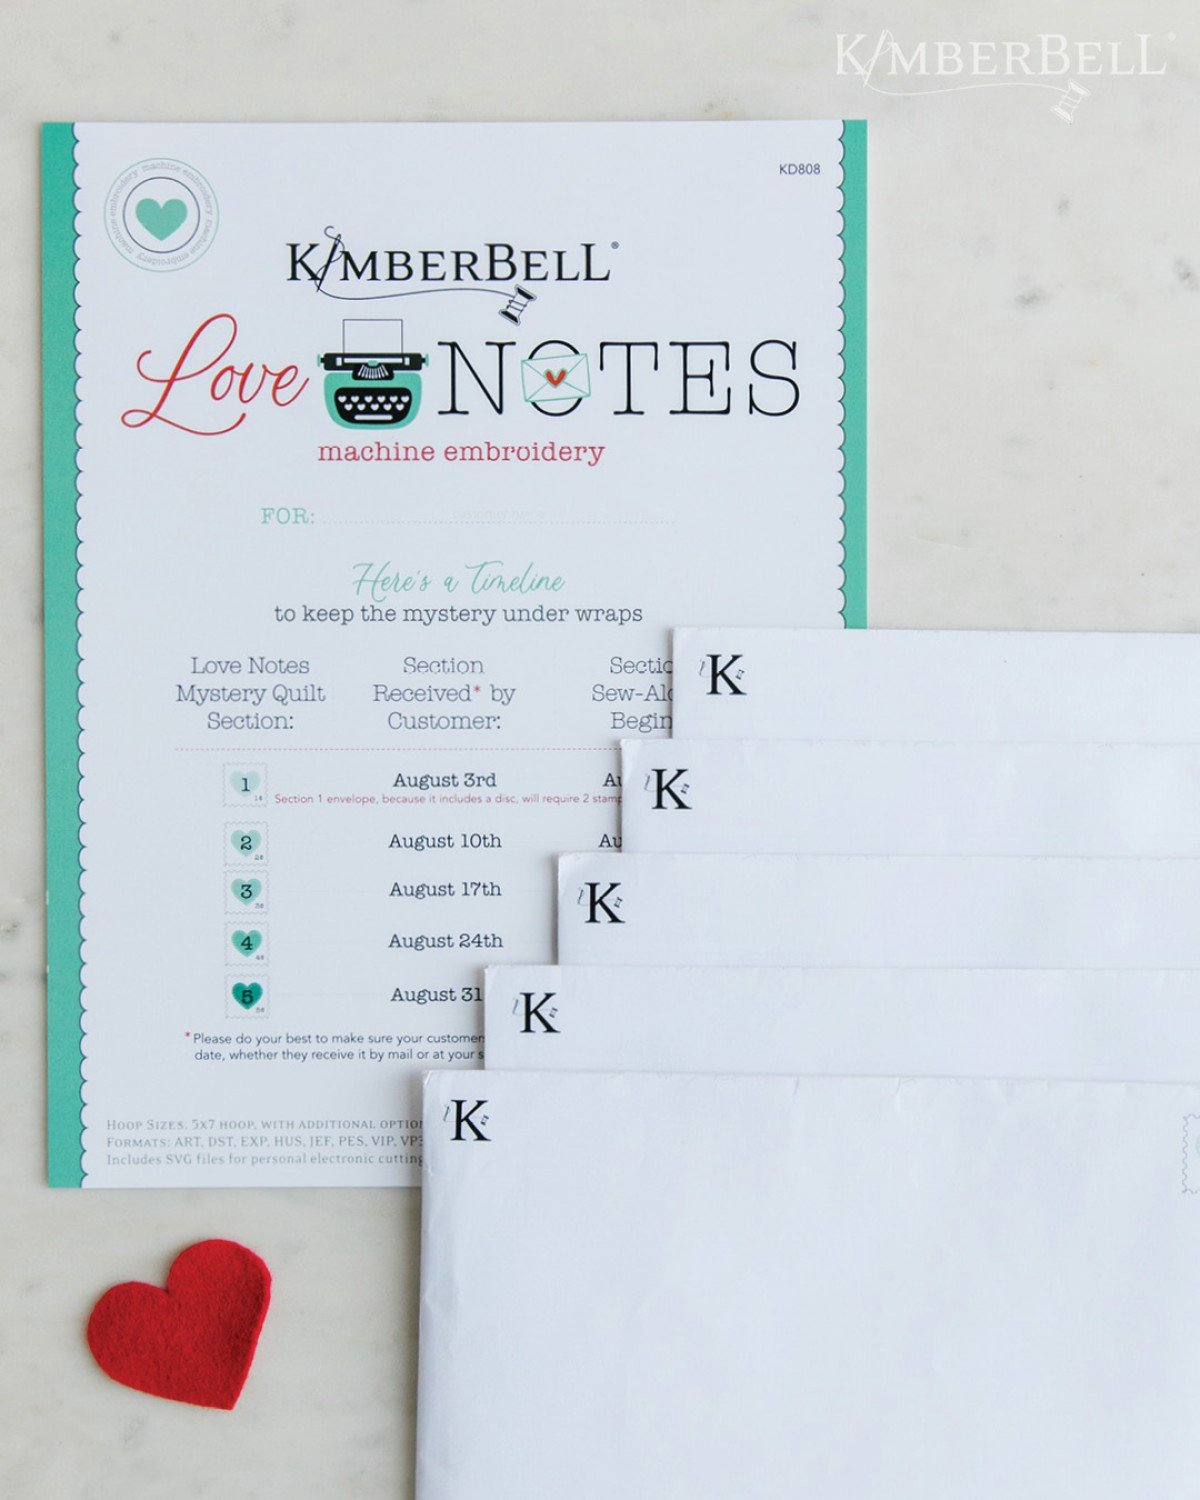 Kimberbell Love Notes - Embroidery